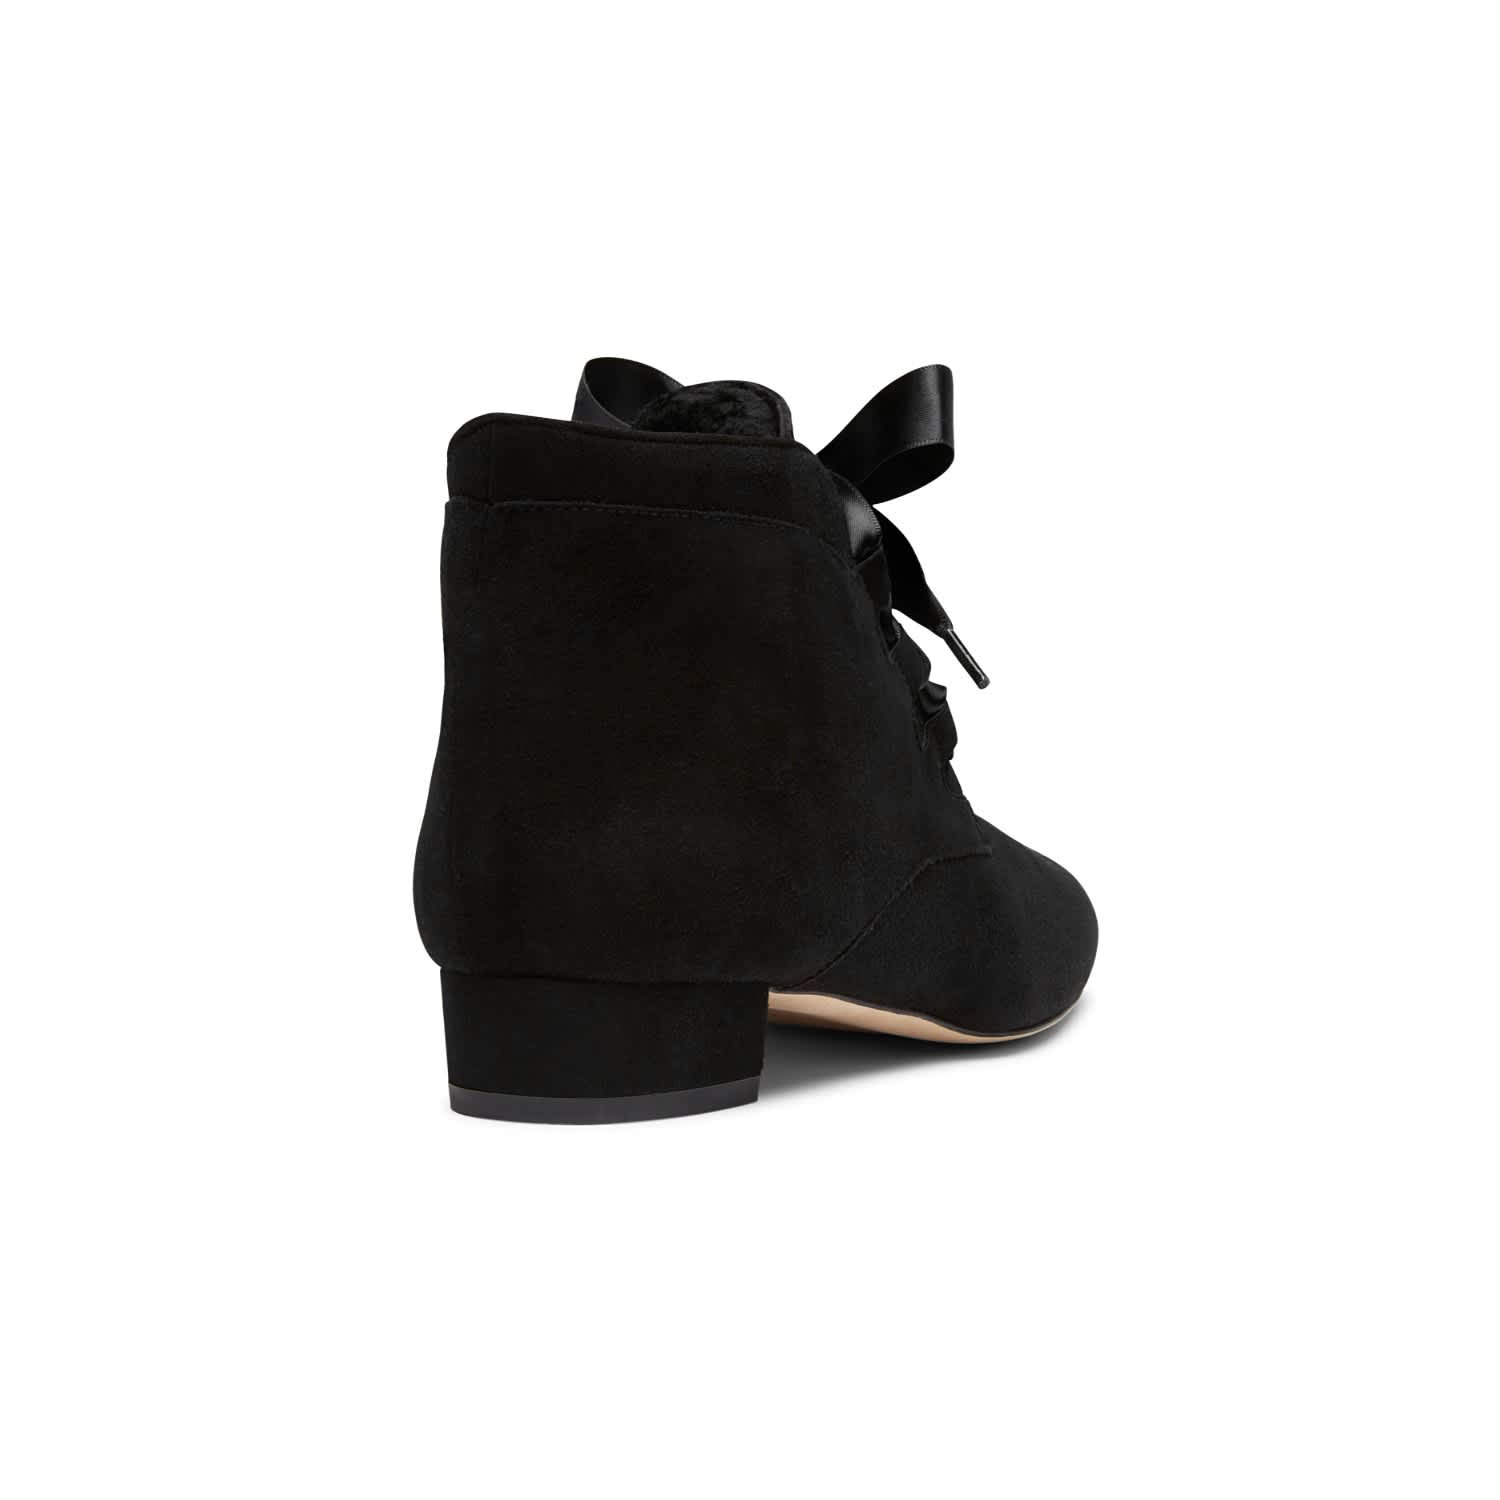 Raya Black Suede Ankle Boots | Alexis